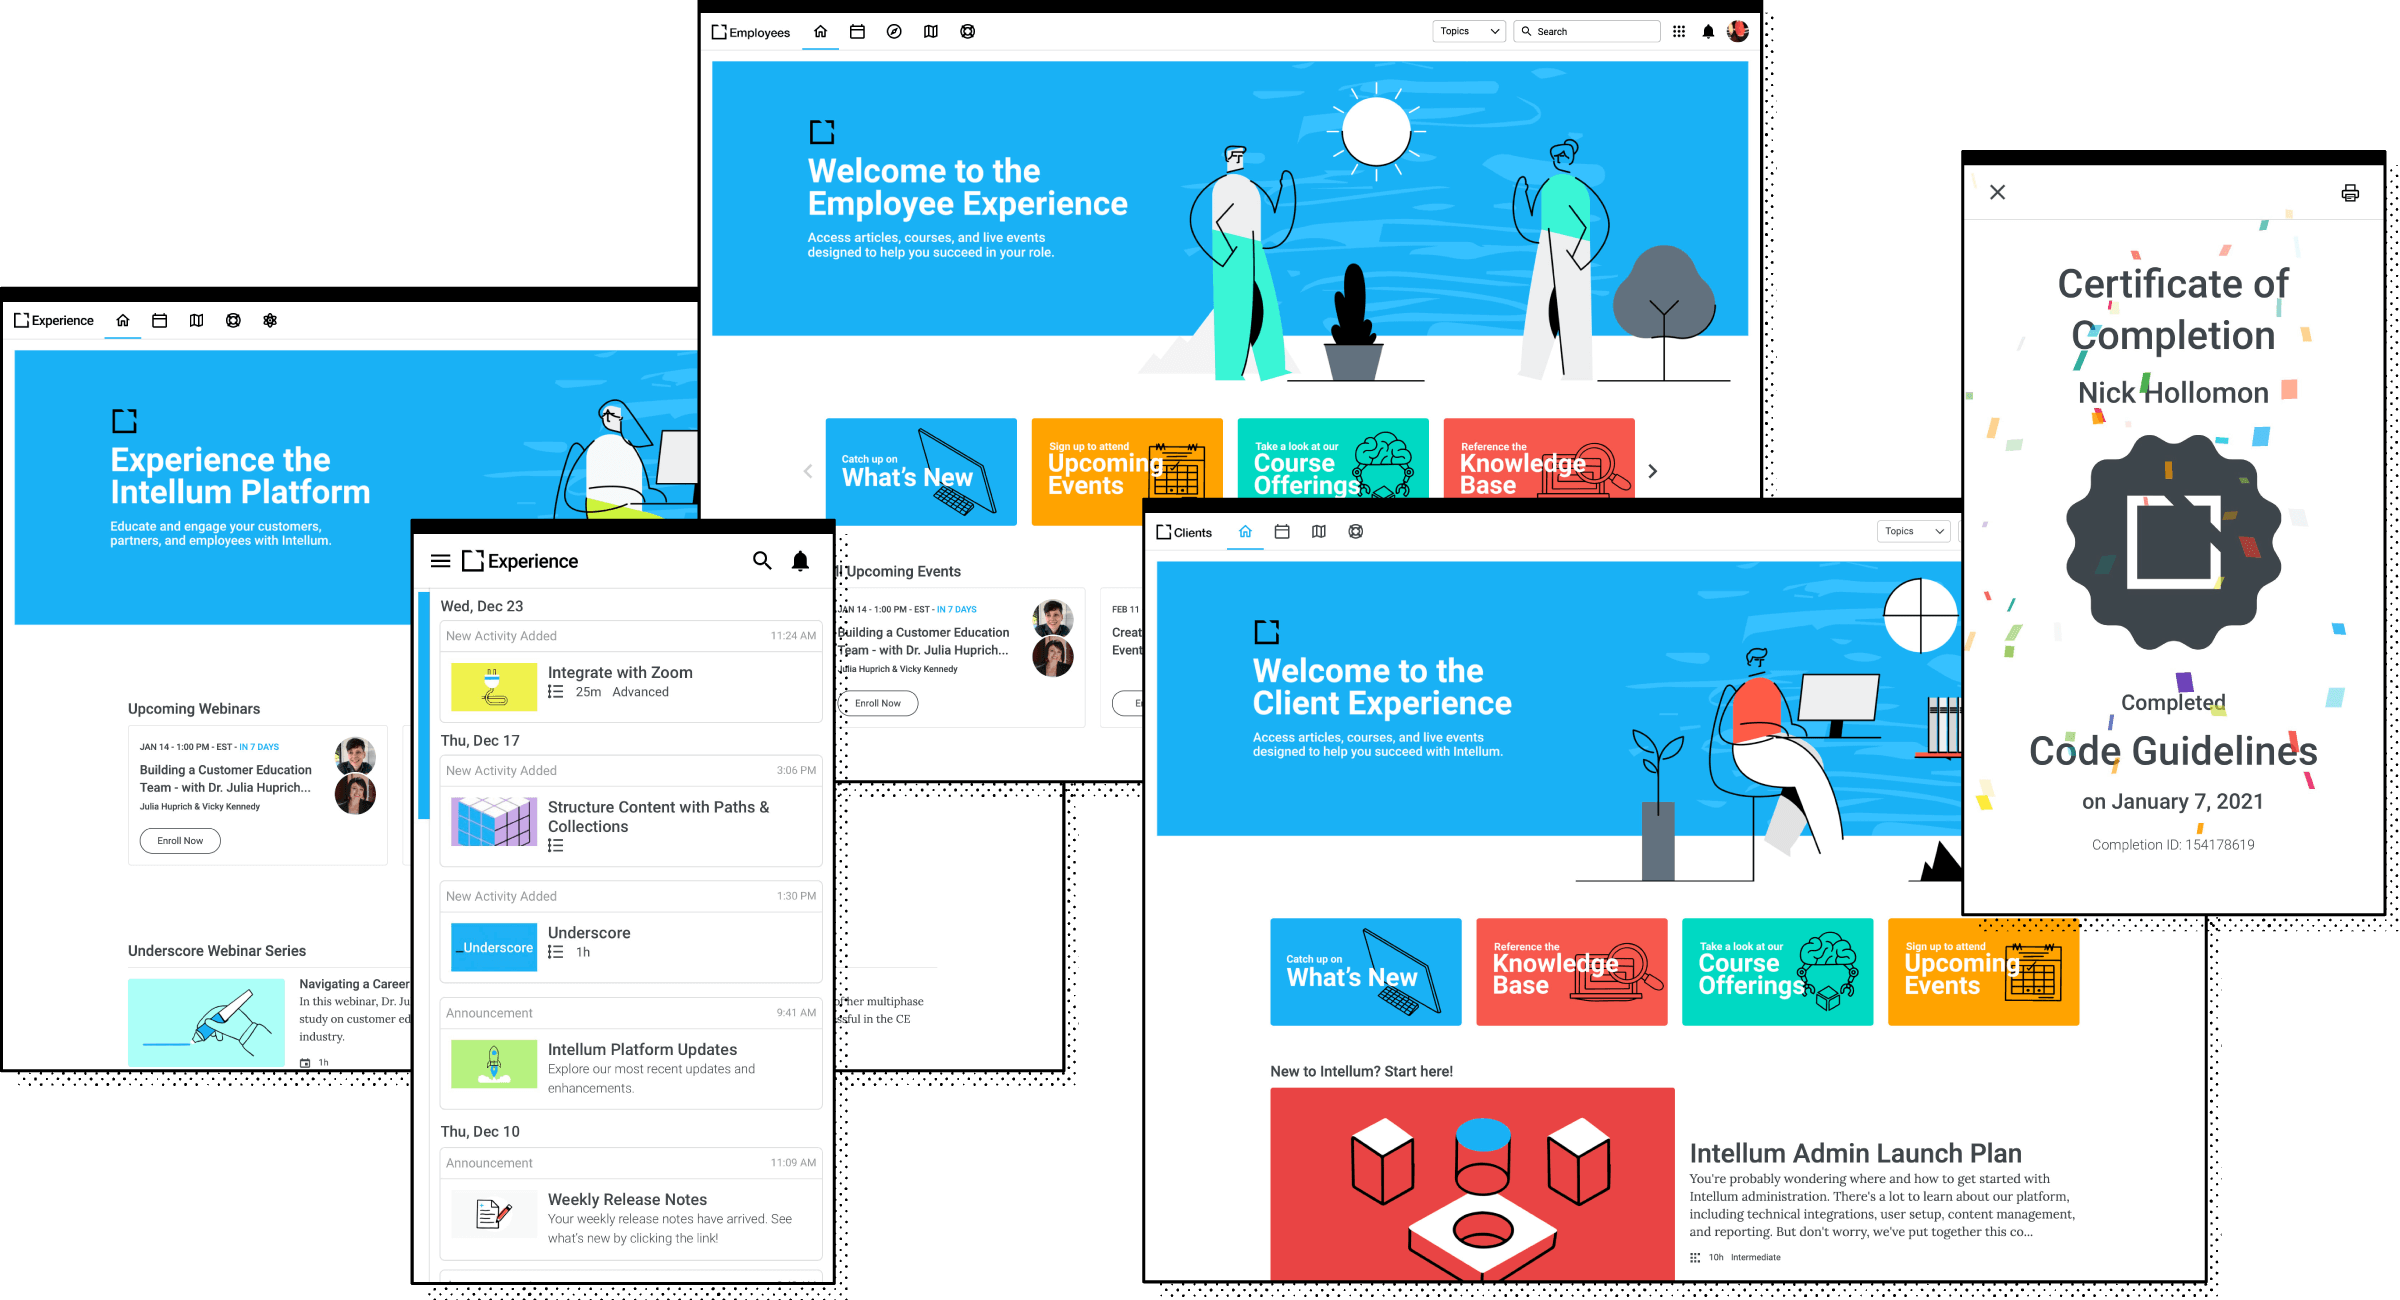 UI examples of the Intellum platform. Highlighting personalization, awards and notifications in the platform